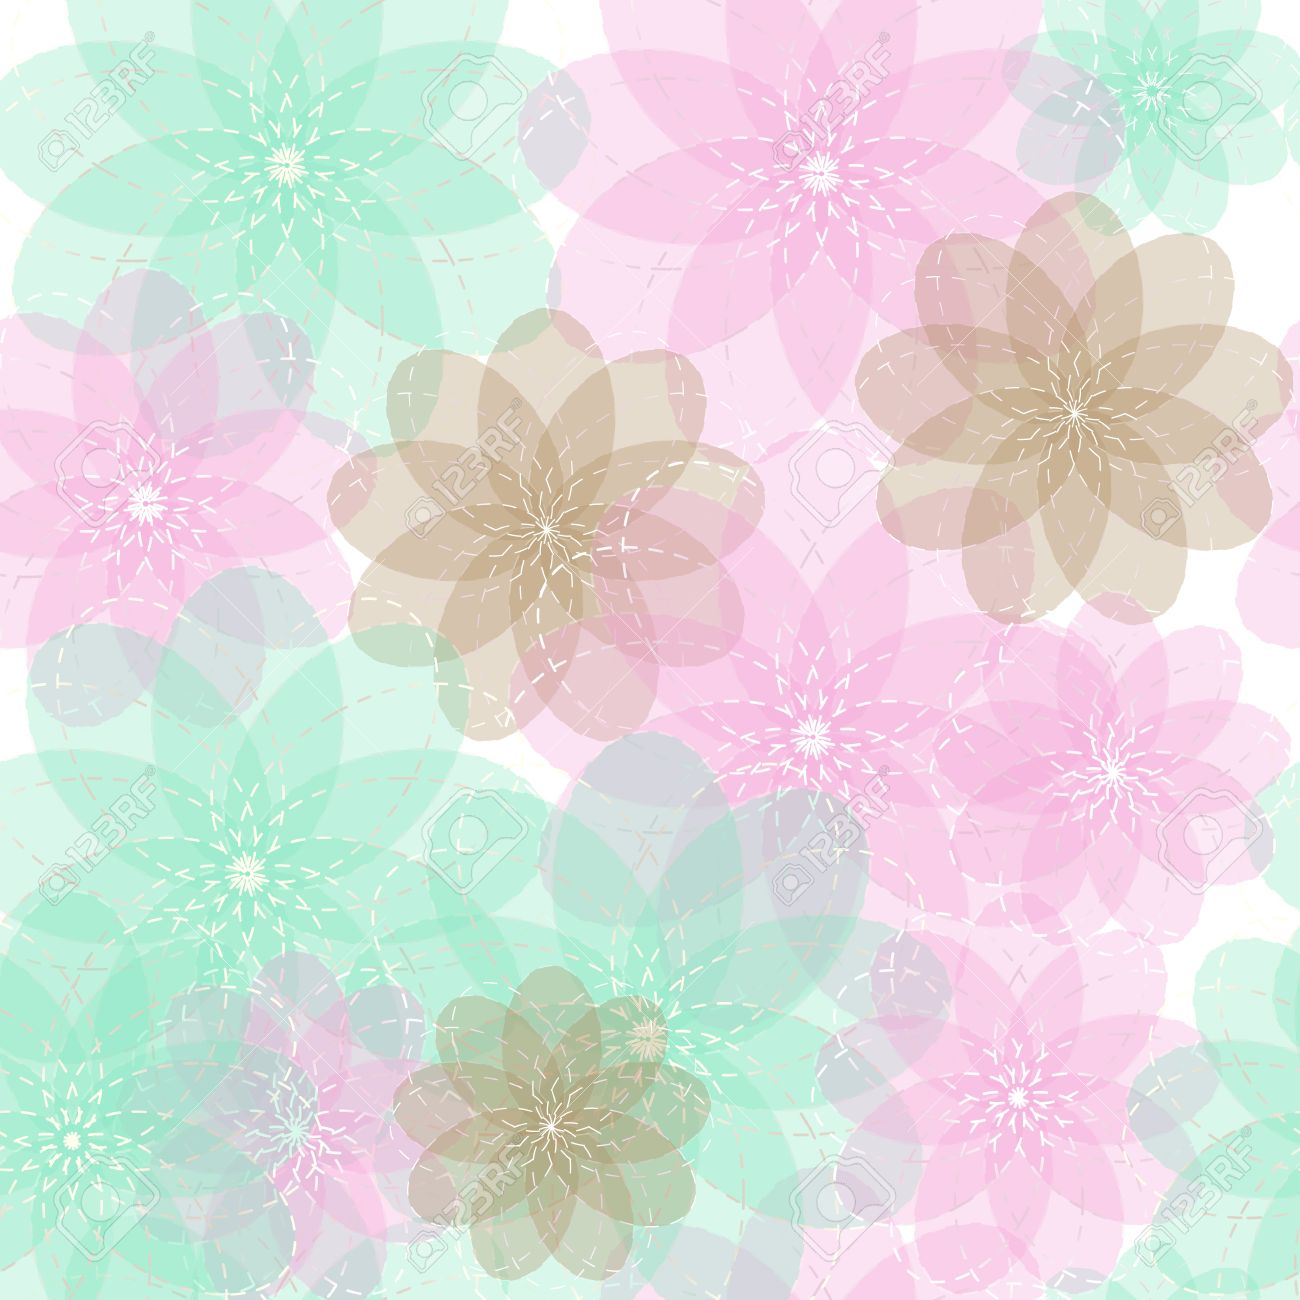 Light Repeating Background Pattern